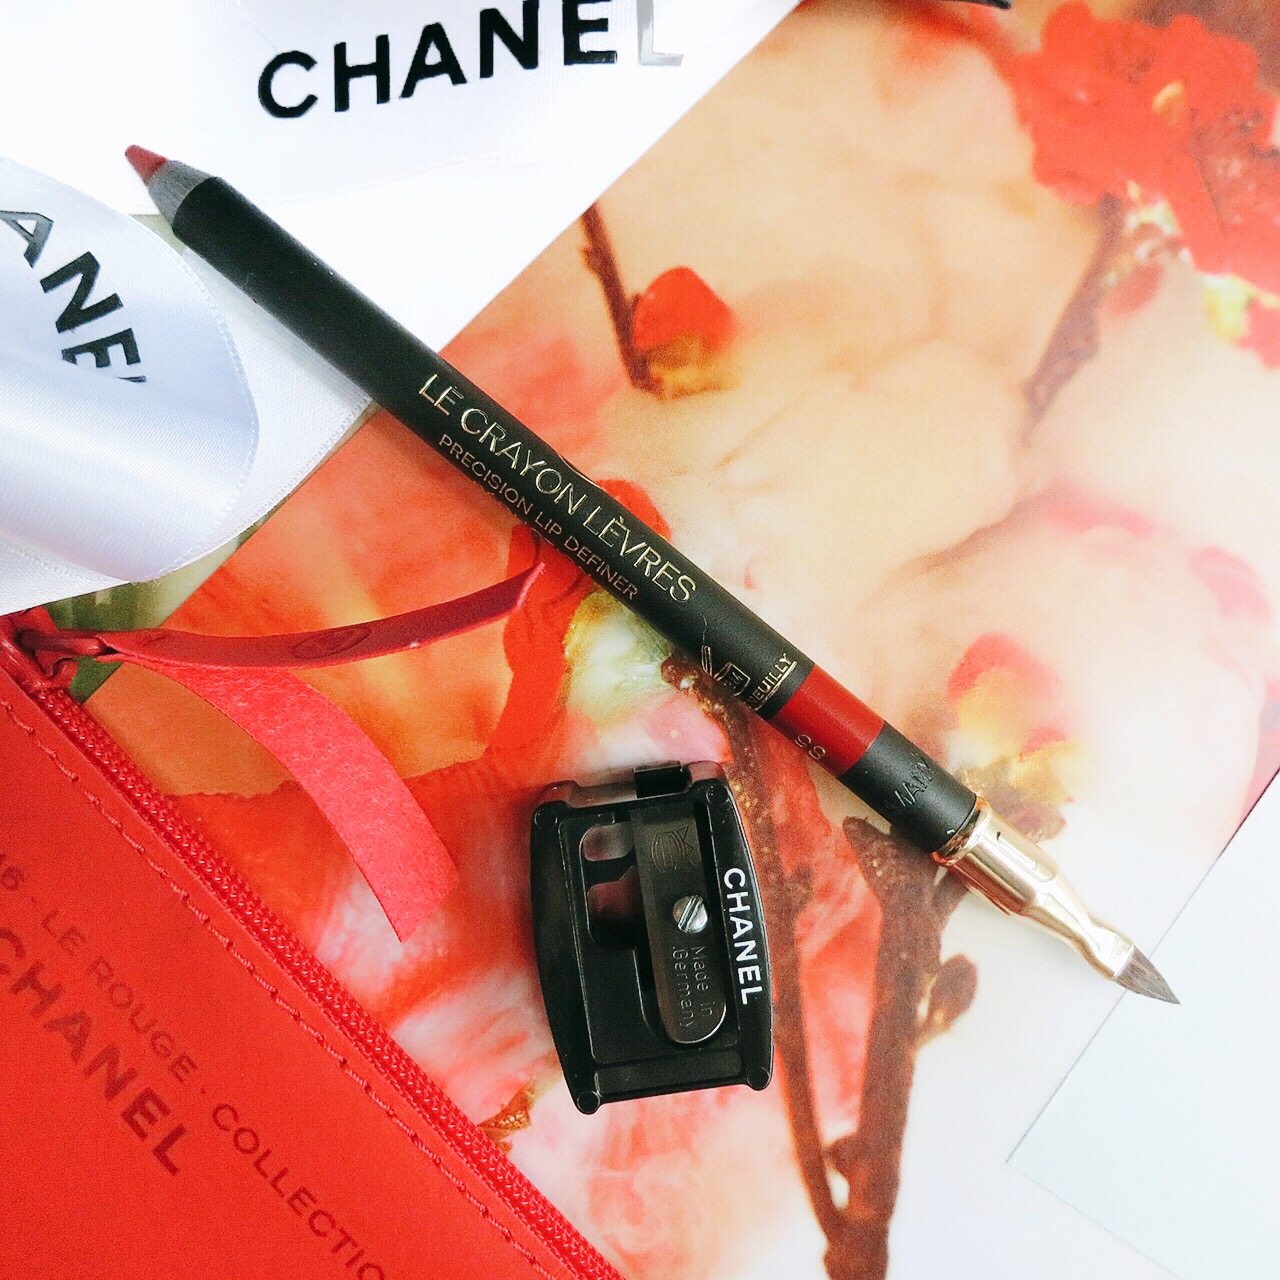 Chanel Le Crayon Levres Seduction for Fall 2016